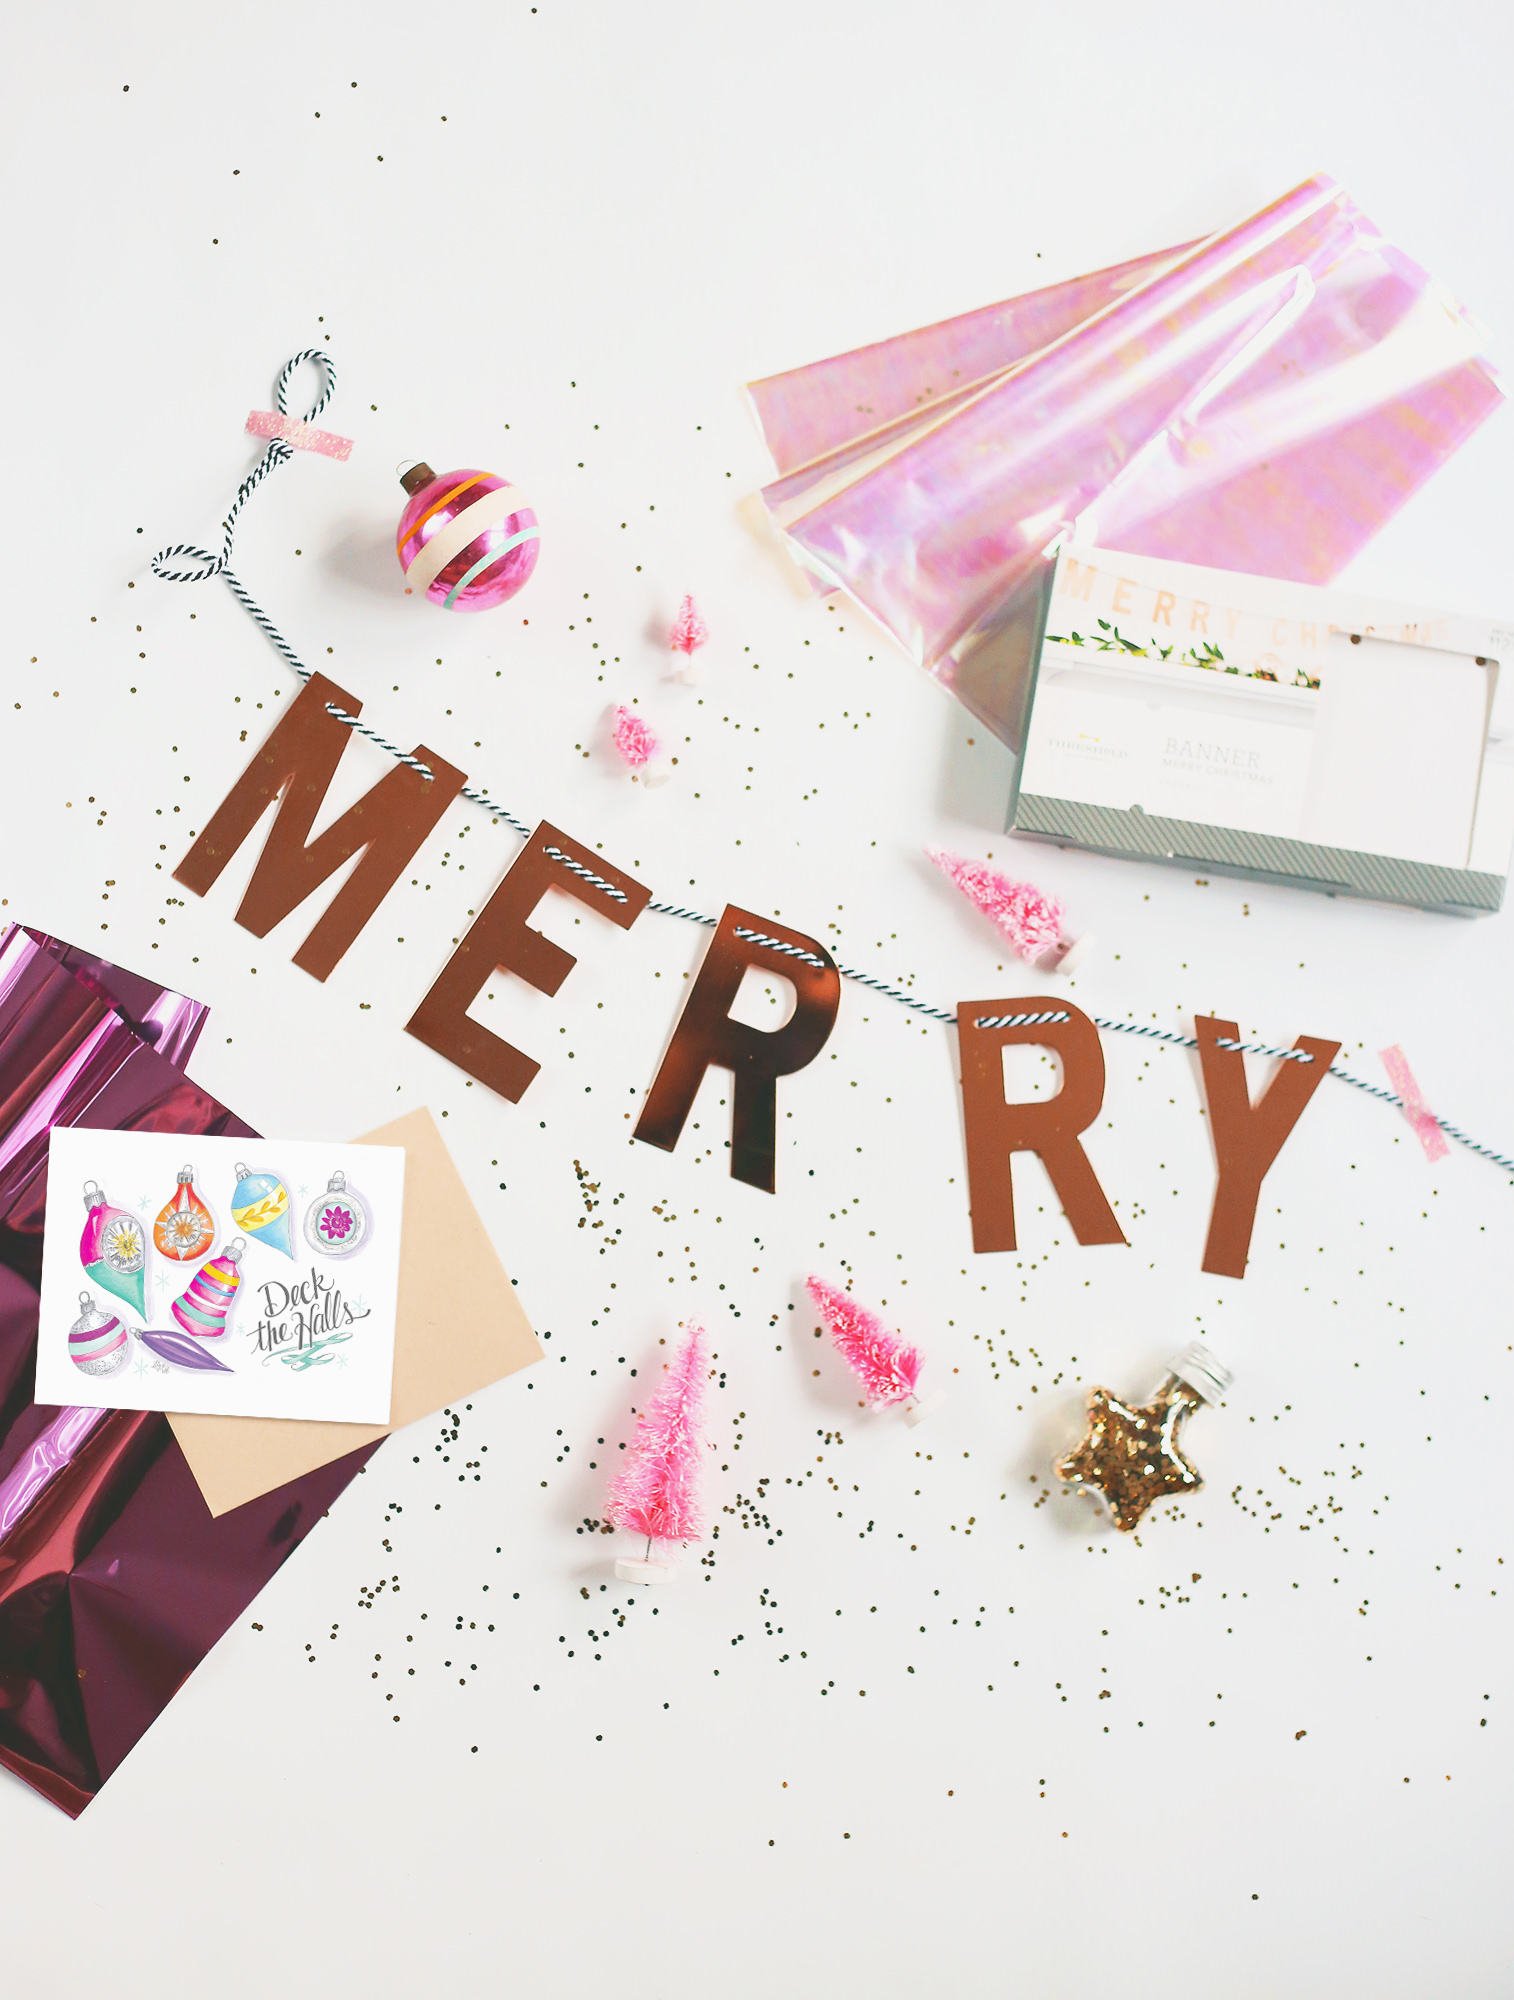 December's Happy Mail includes a festive gold banner, a vintage ornament and plenty of holiday sparkle!